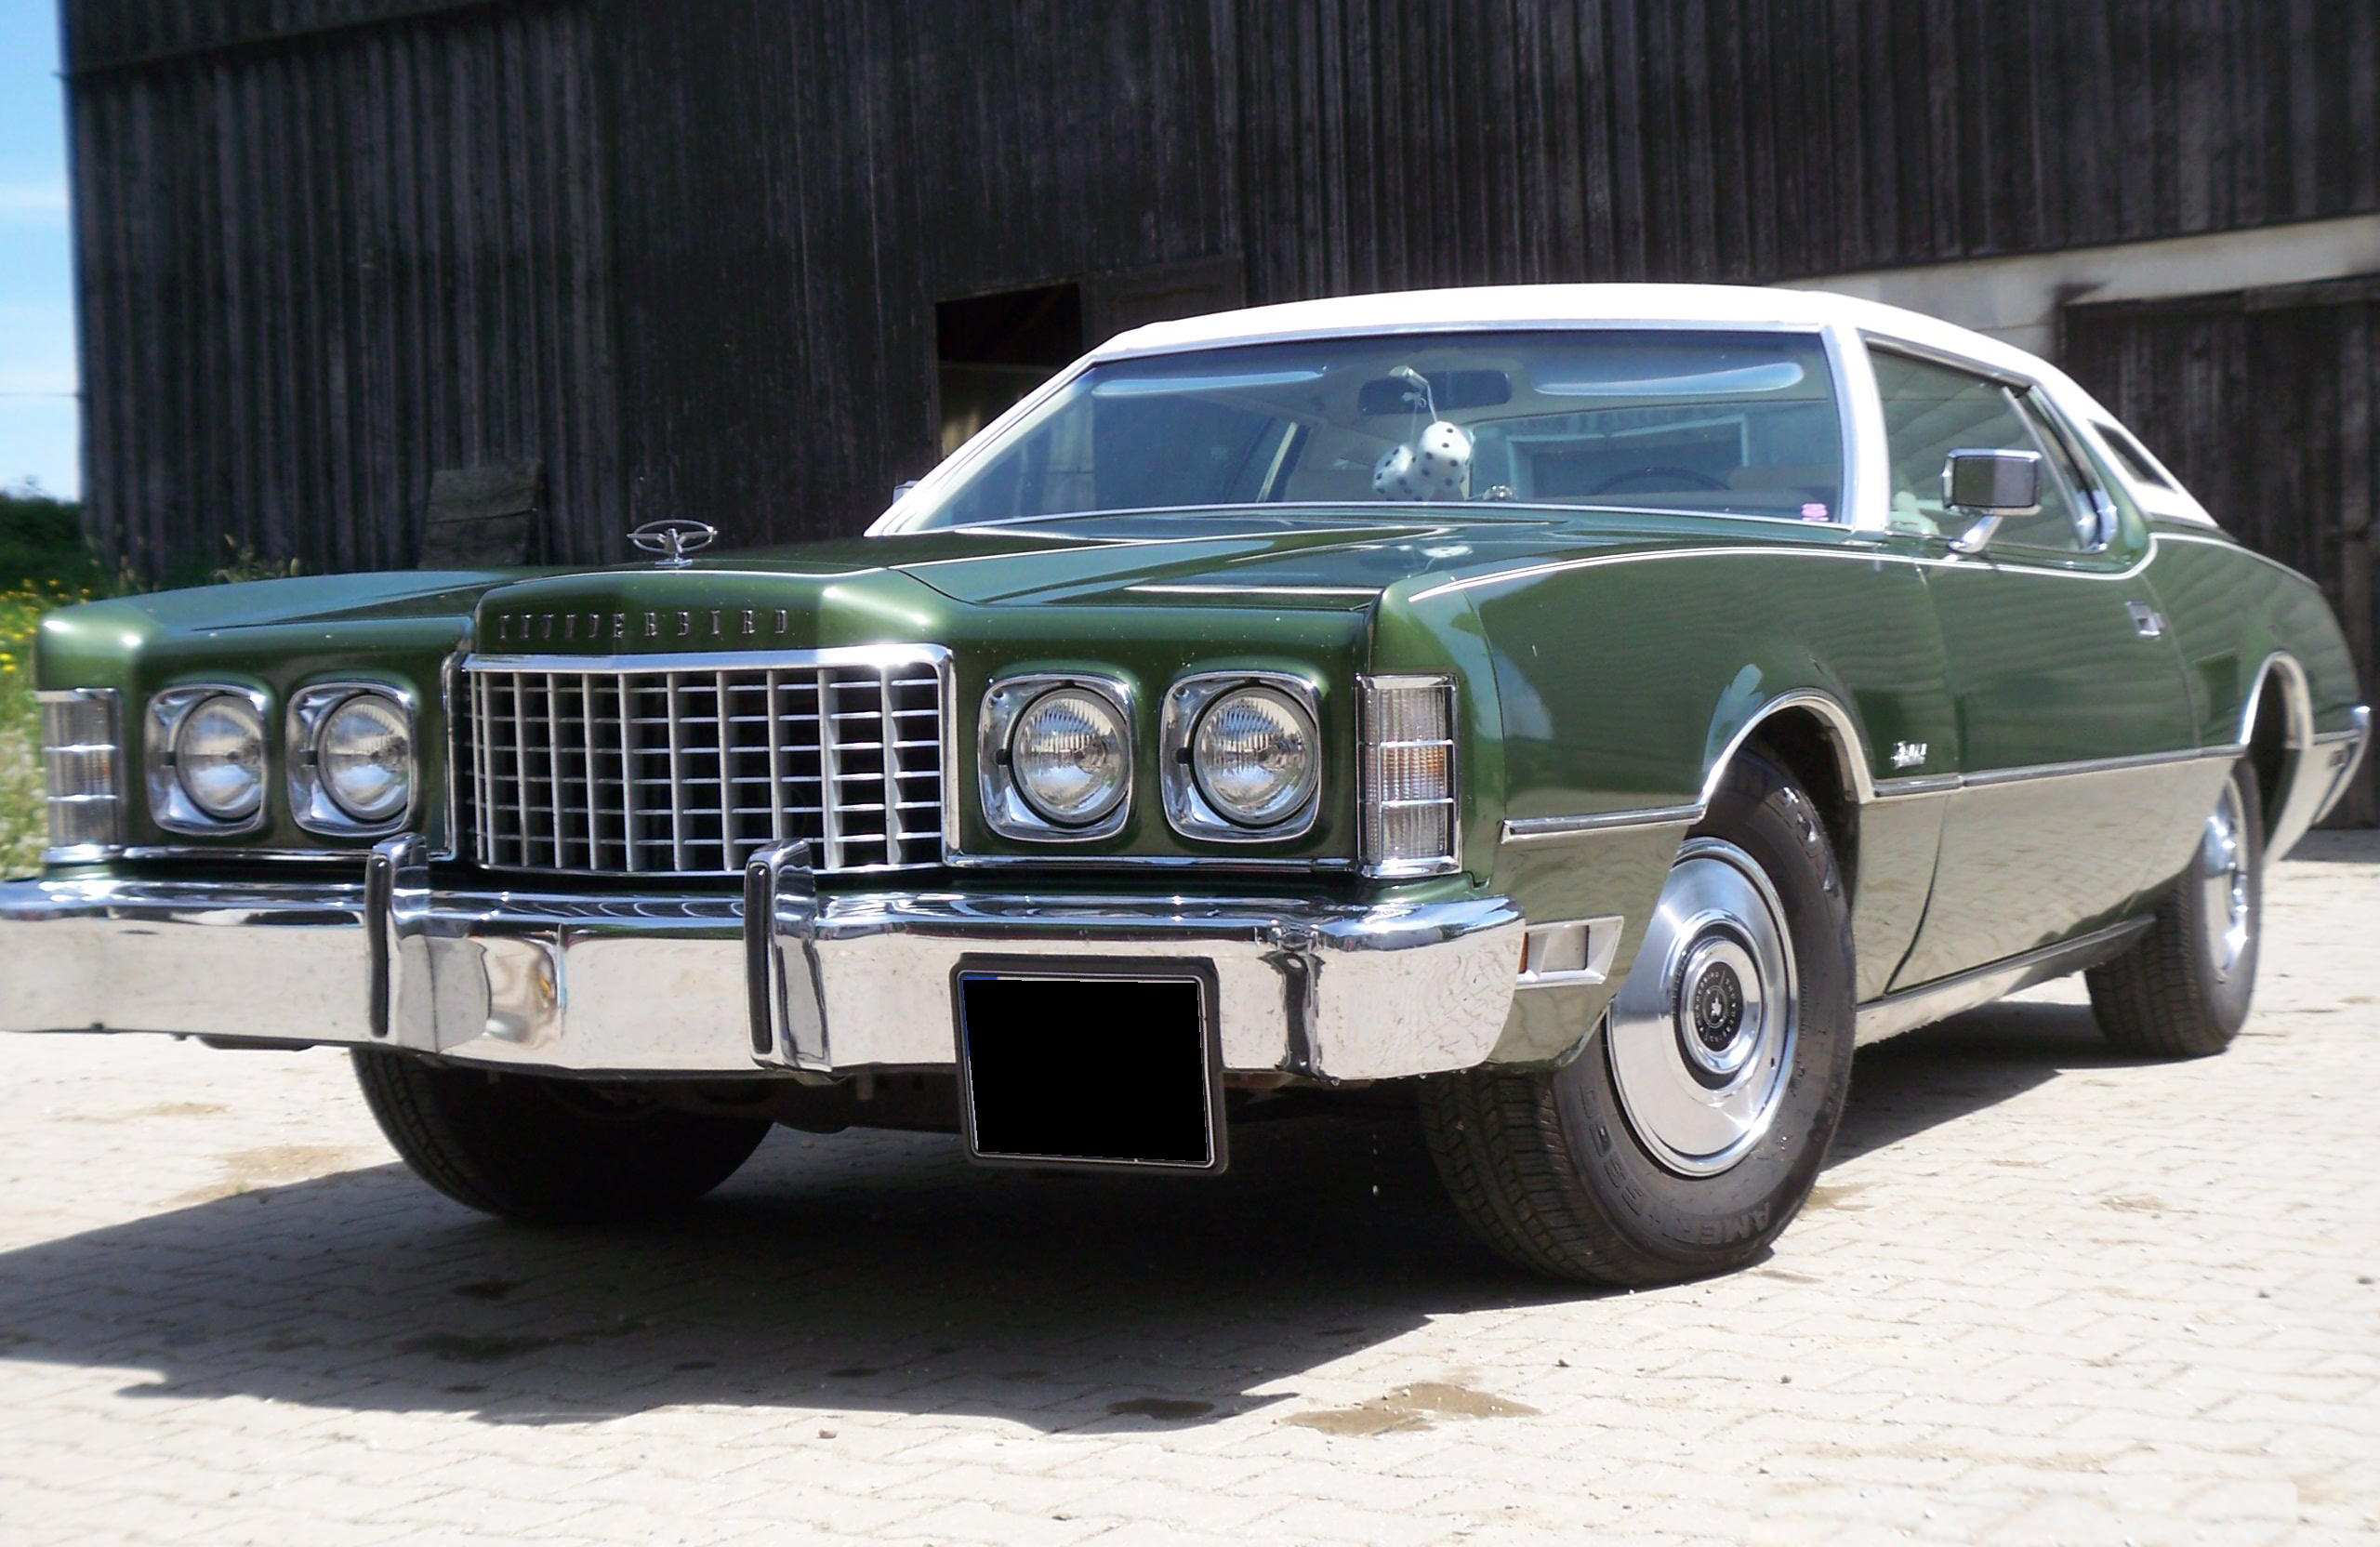 File:1973 Ford Thunderbird Front.JPG - Wikimedia Commons